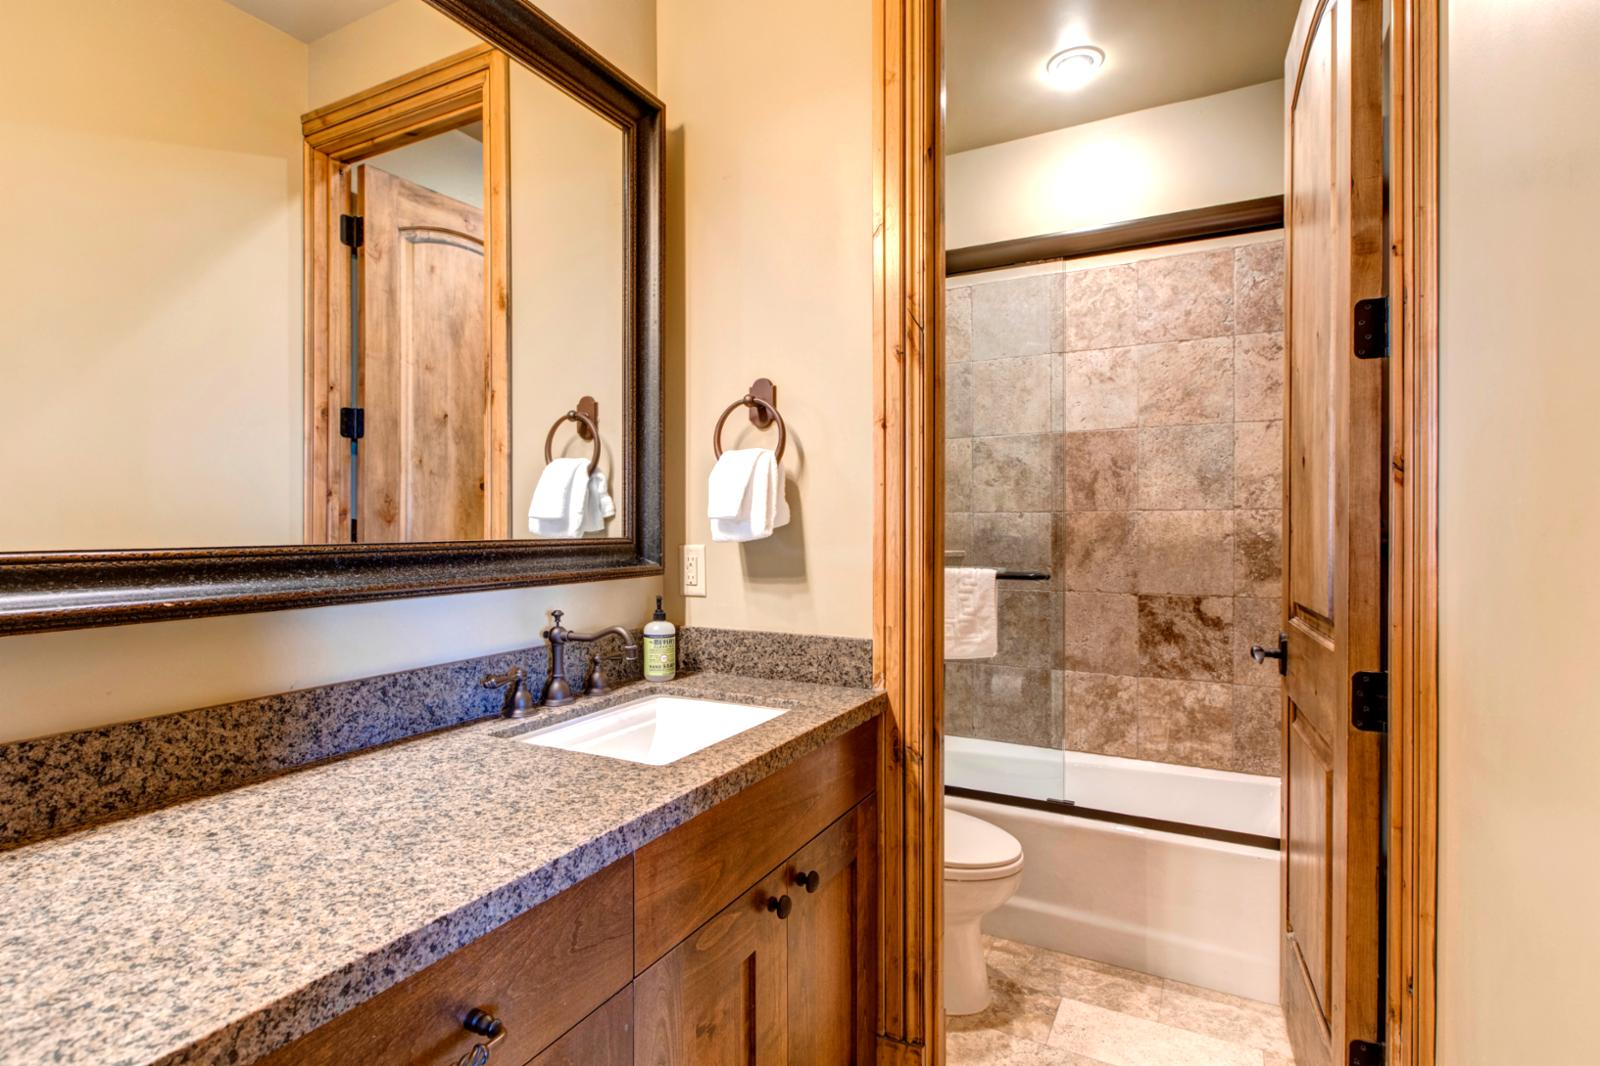 Bathroom in lower level is shared by the King lower bedroom and family movie room